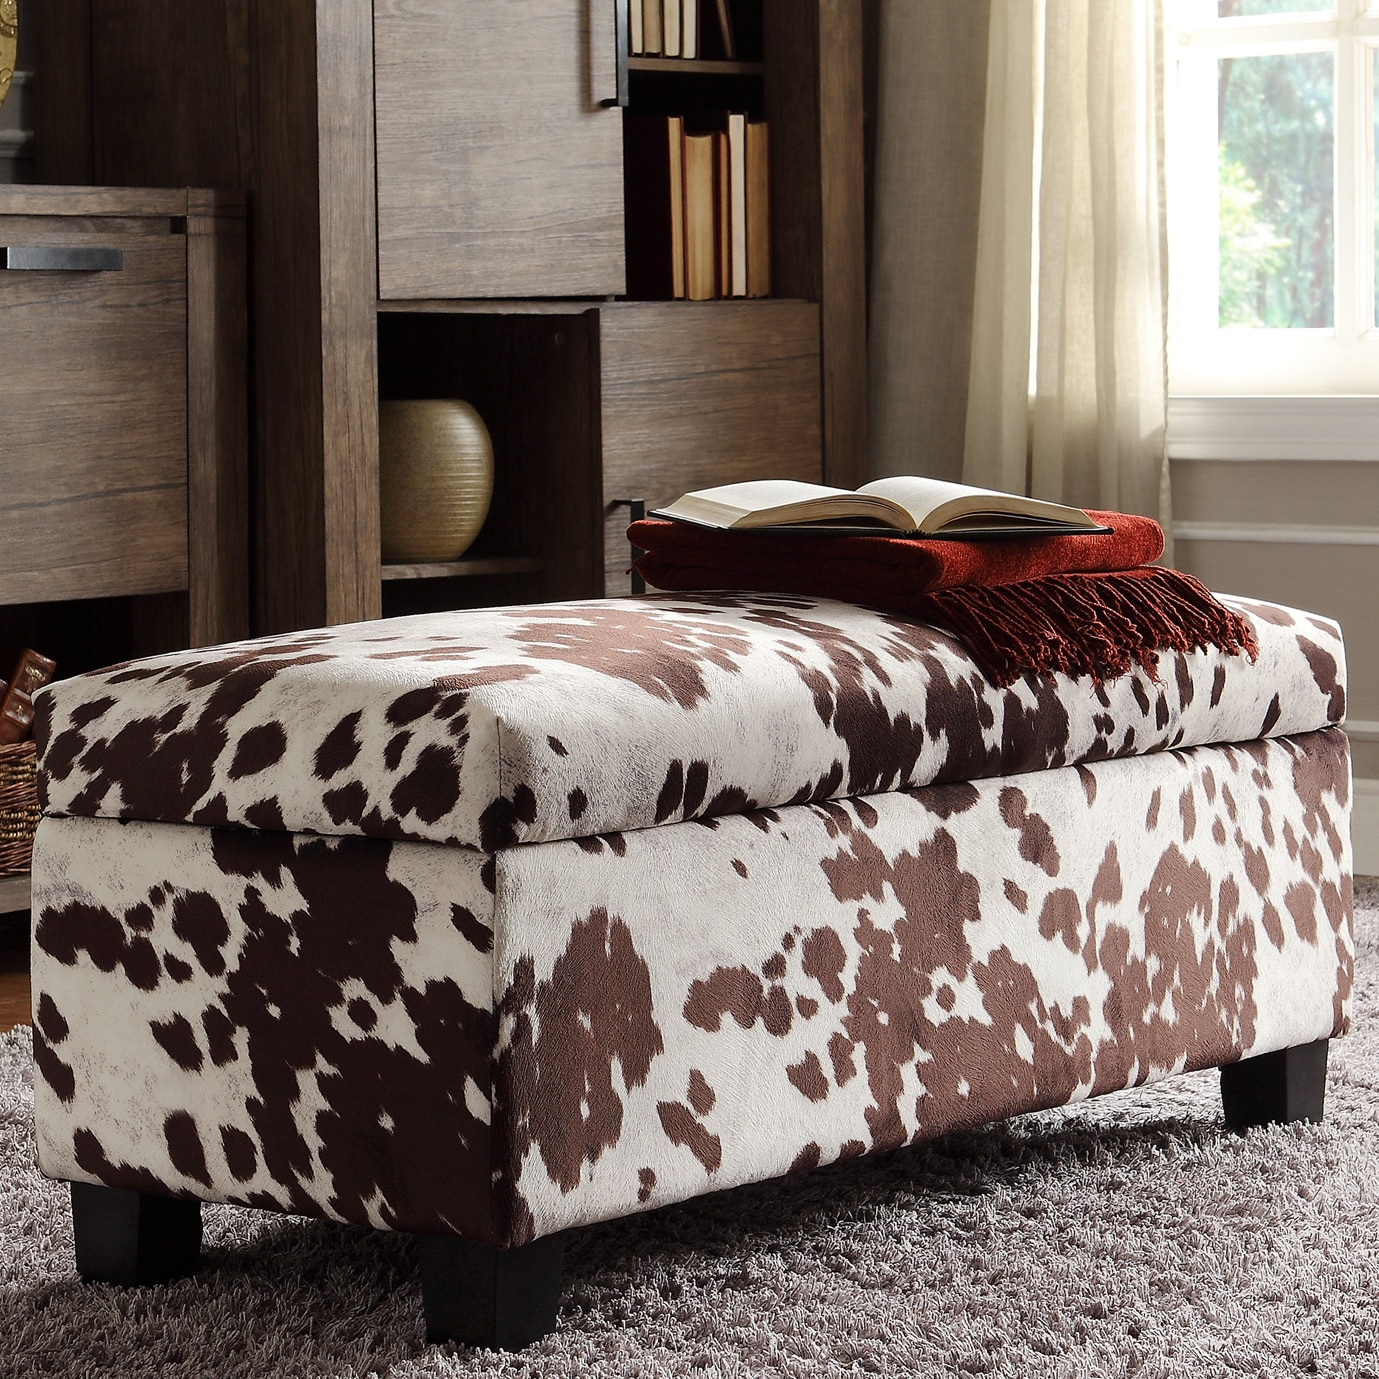 Details about Faux Cowhide Storage Bench Lift Top Rectangular Ottoman  Bedroom Foot Rest Seat